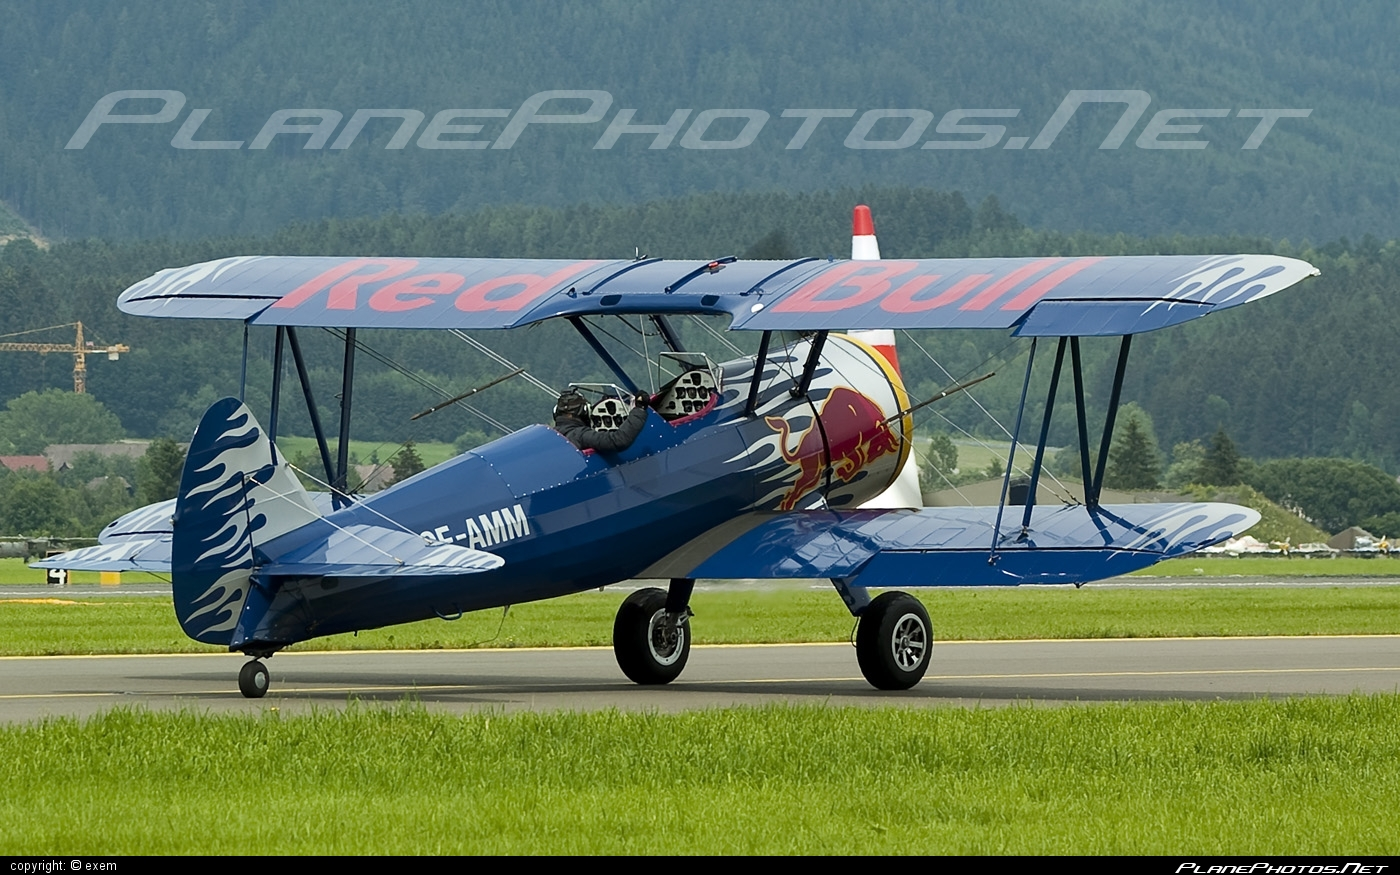 Boeing PT-13D Kaydet - OE-AMM operated by The Flying Bulls #airpower #airpower2009 #boeing #boeingkaydet #boeingpt13 #boeingpt13d #boeingstearman #stearman #theflyingbulls